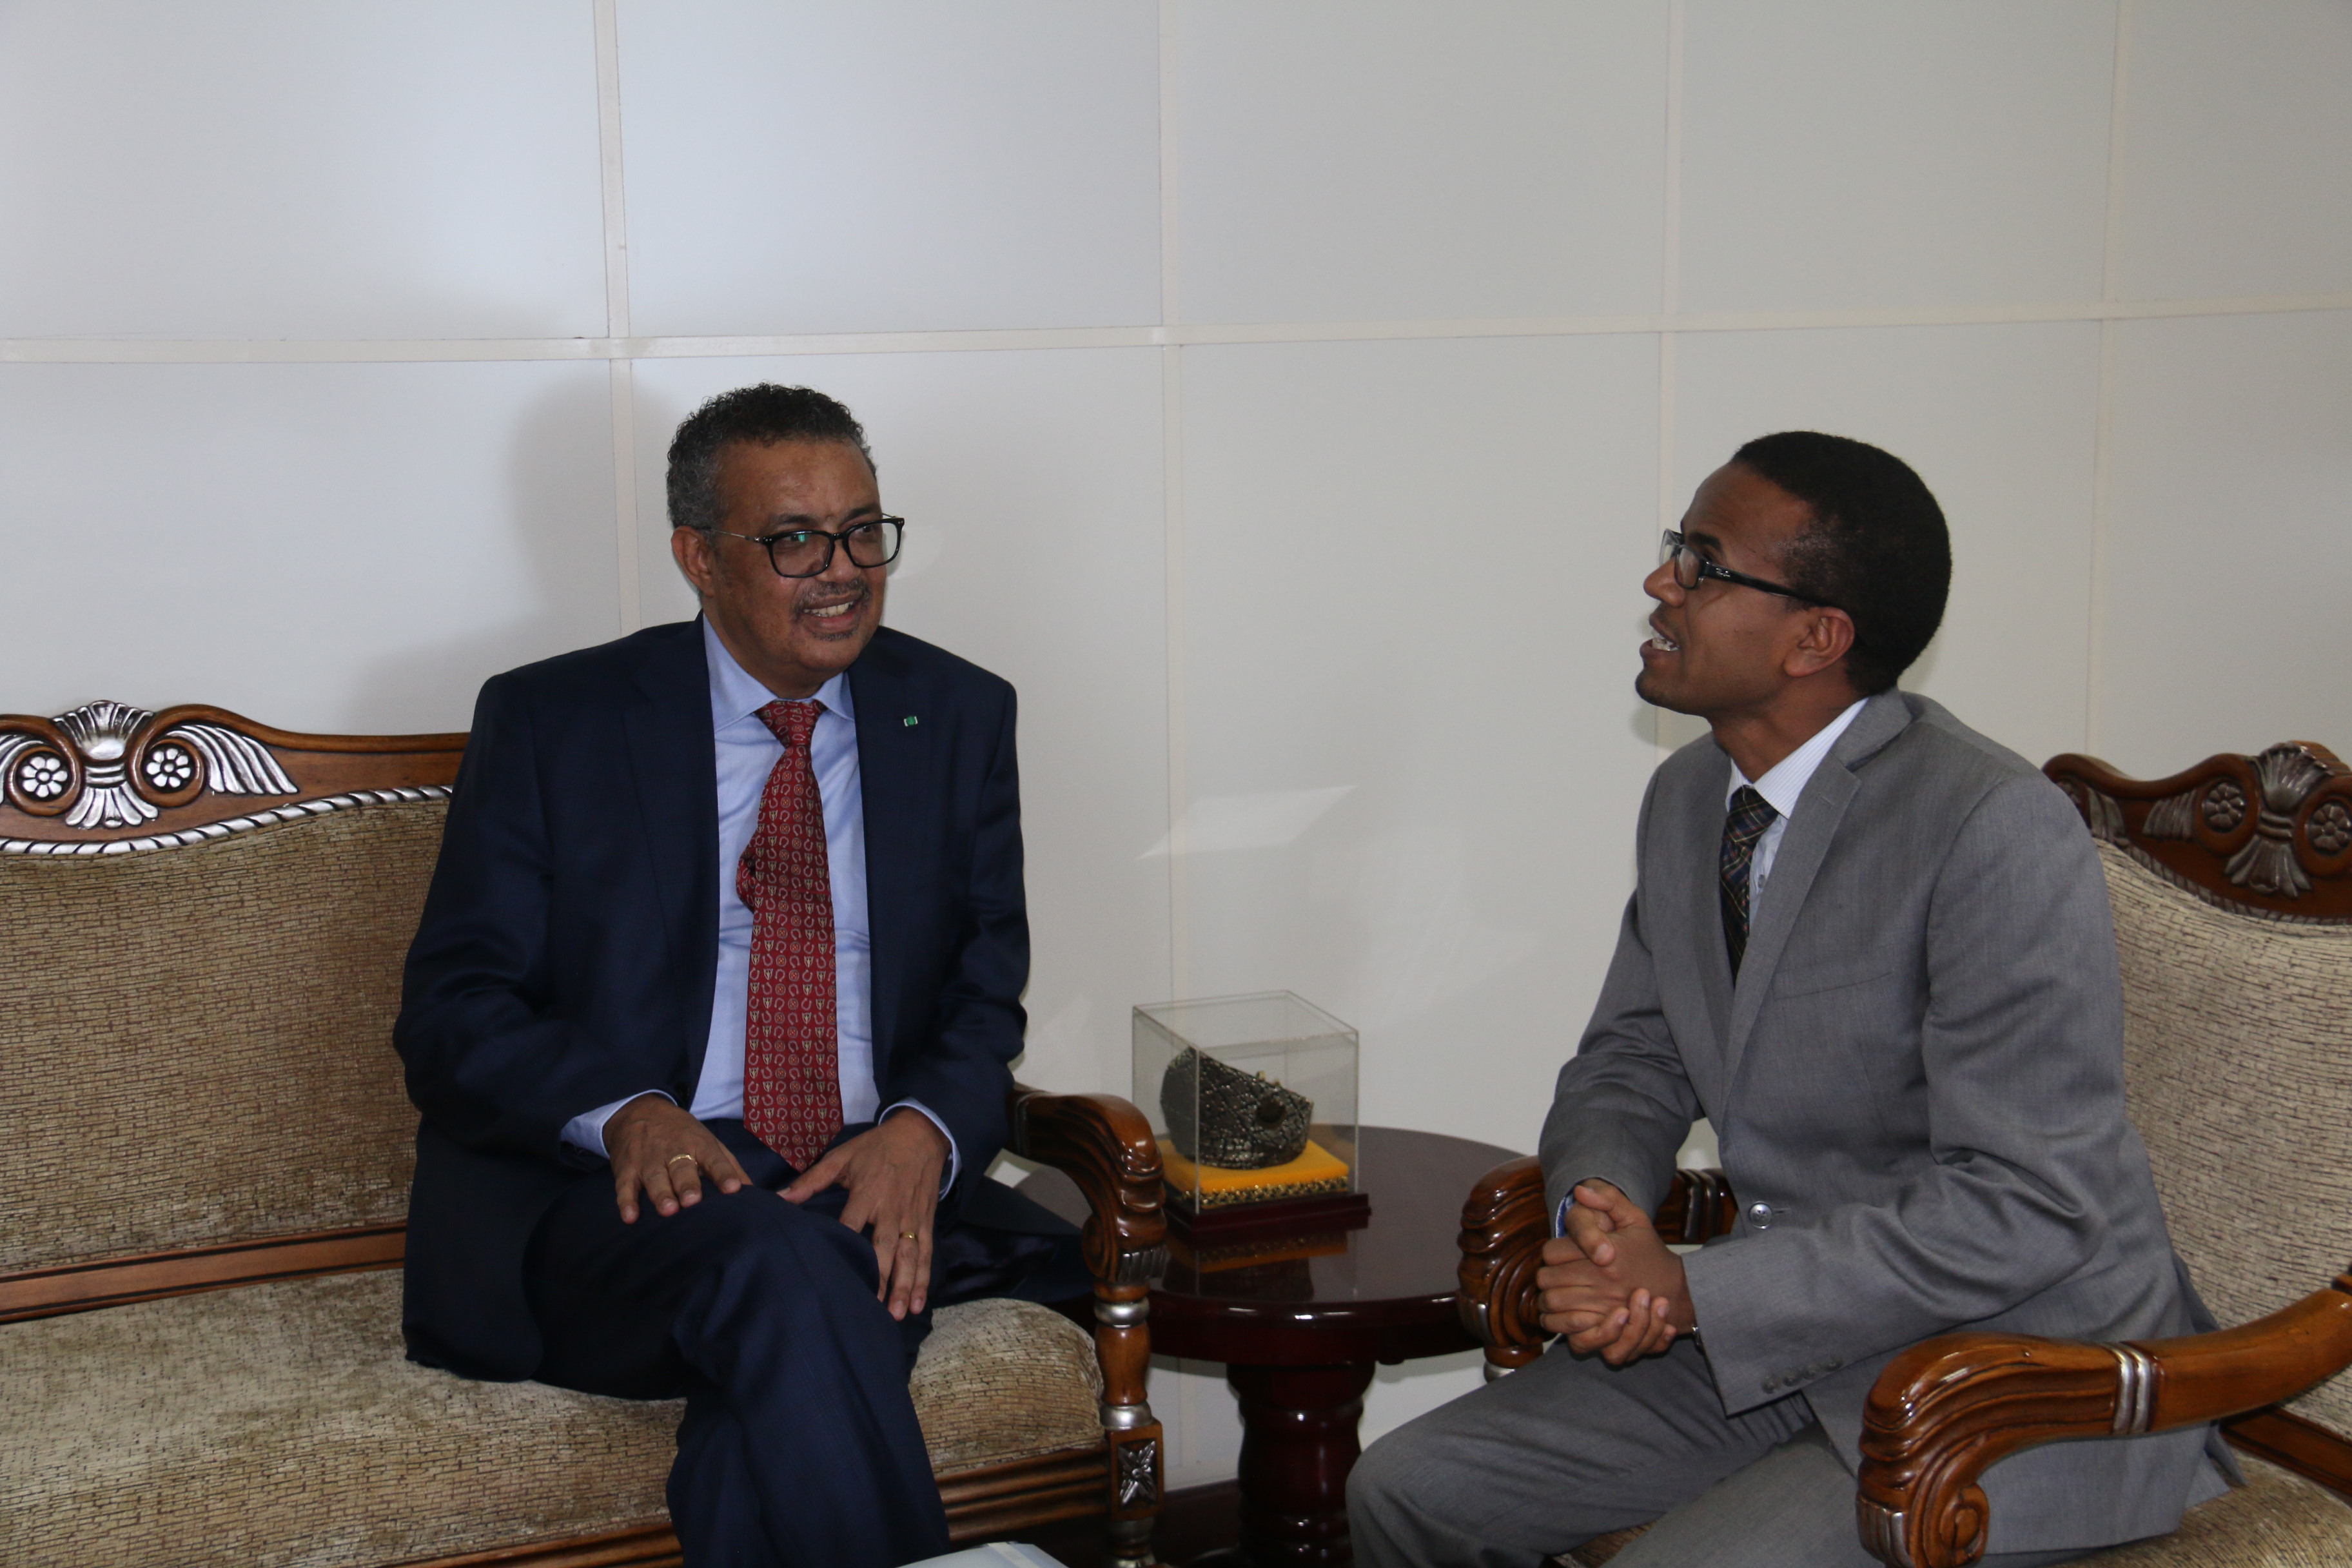 Dr Tedros discussing with H.E Dr Amir Aman, Minister, Ministry of Health